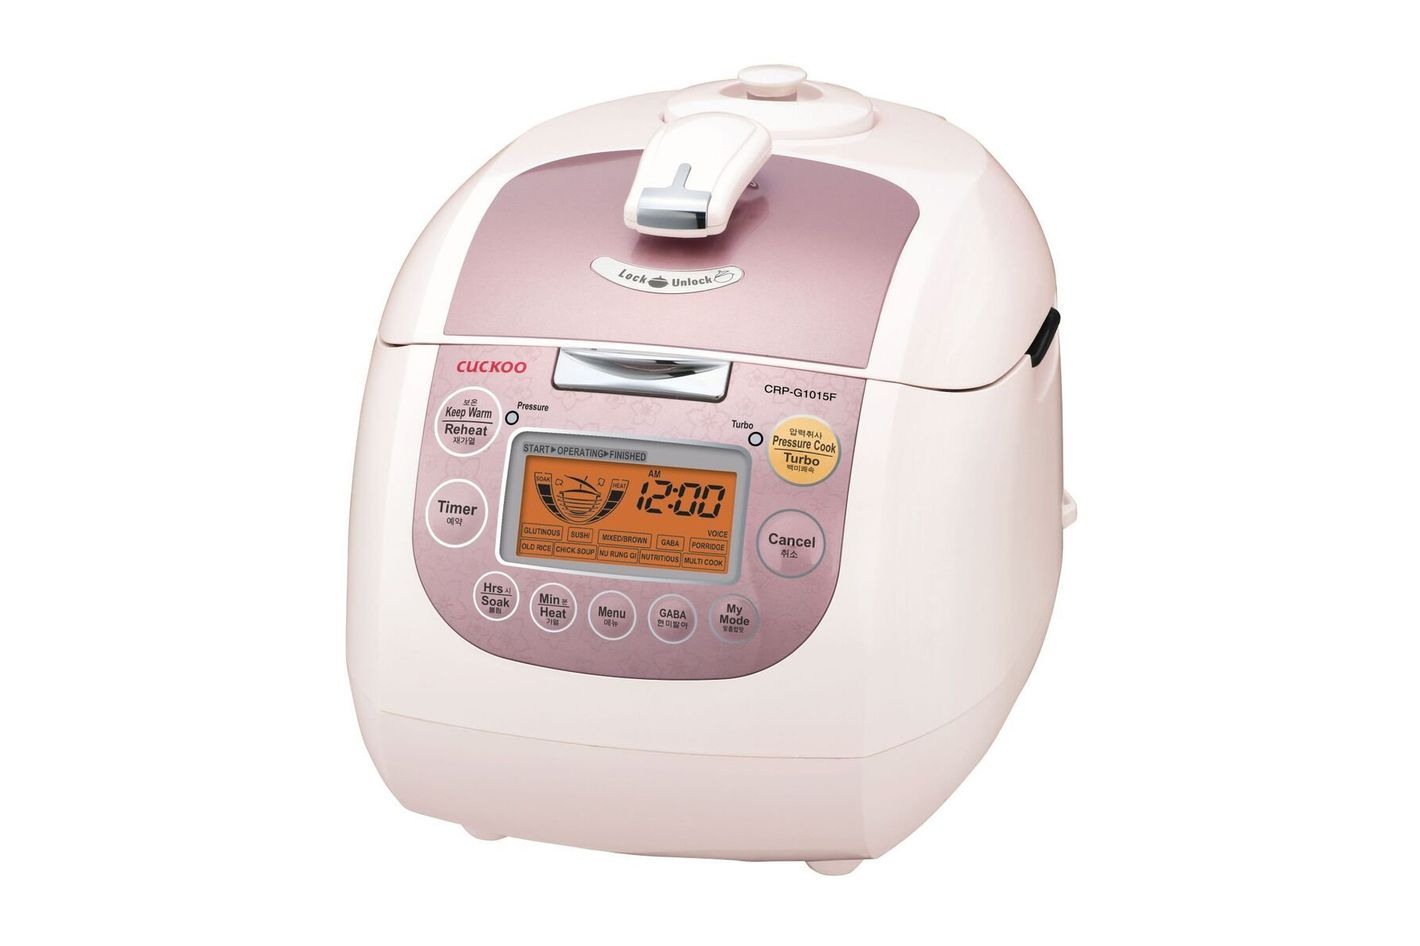 Cuckoo CRP-G1015F 10 Cup Electric Pressure Rice Cooker